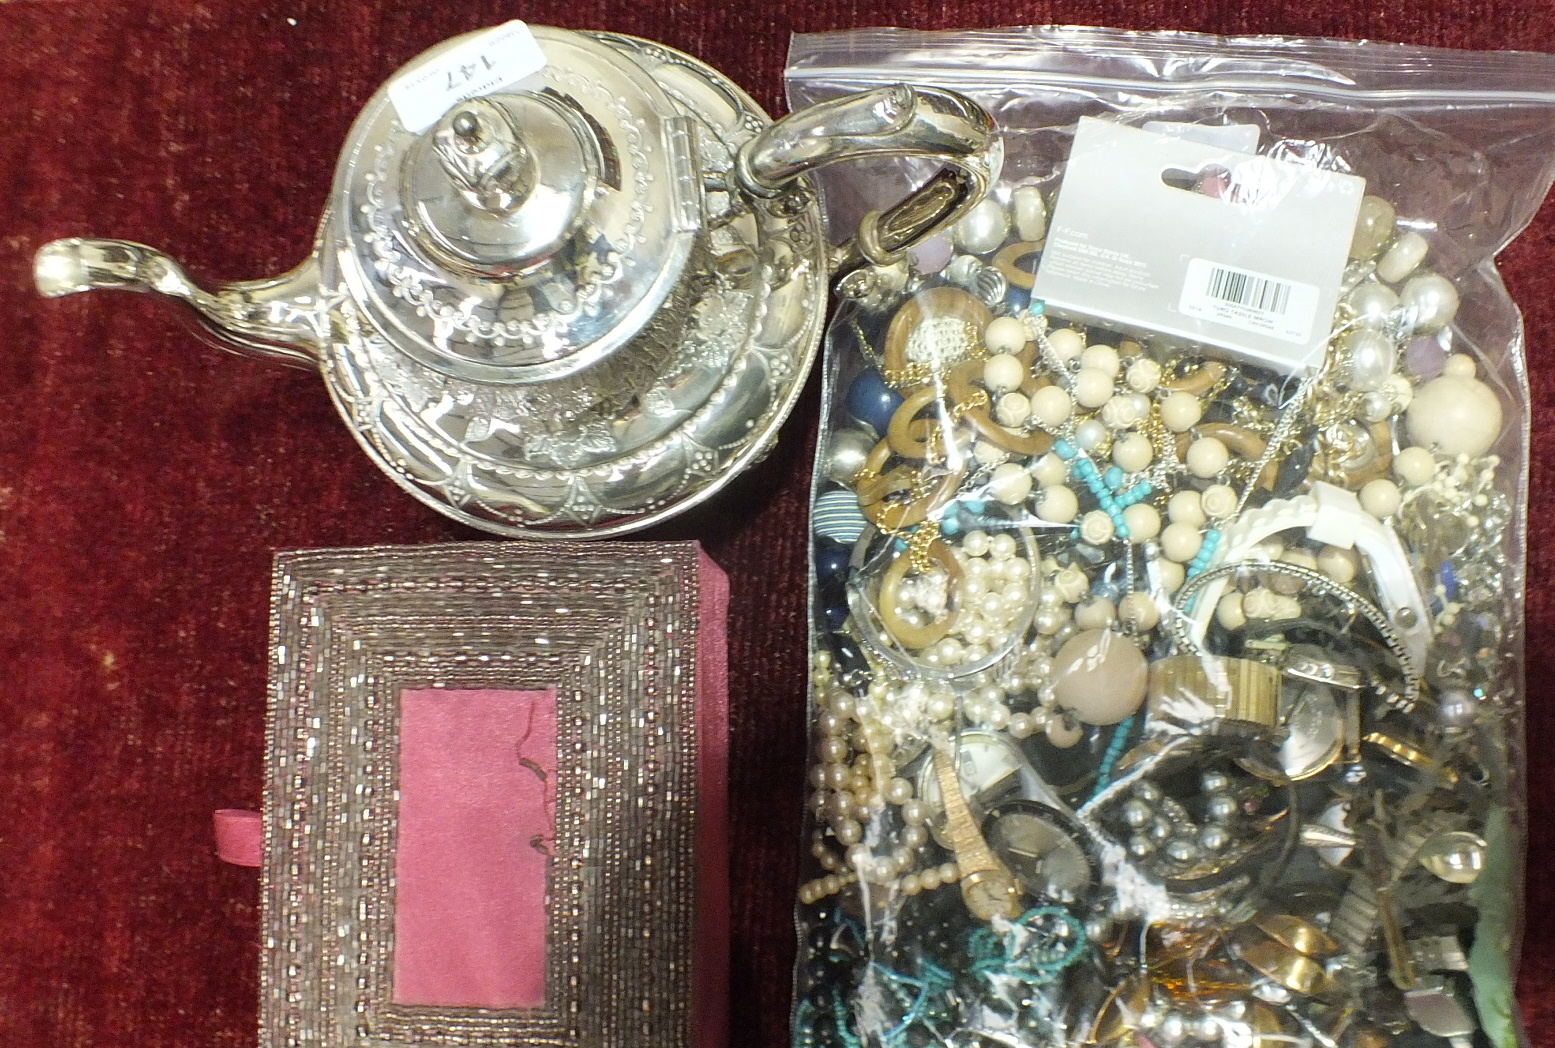 Lot 147 - A collection of costume jewellery, watches and miscellanea.